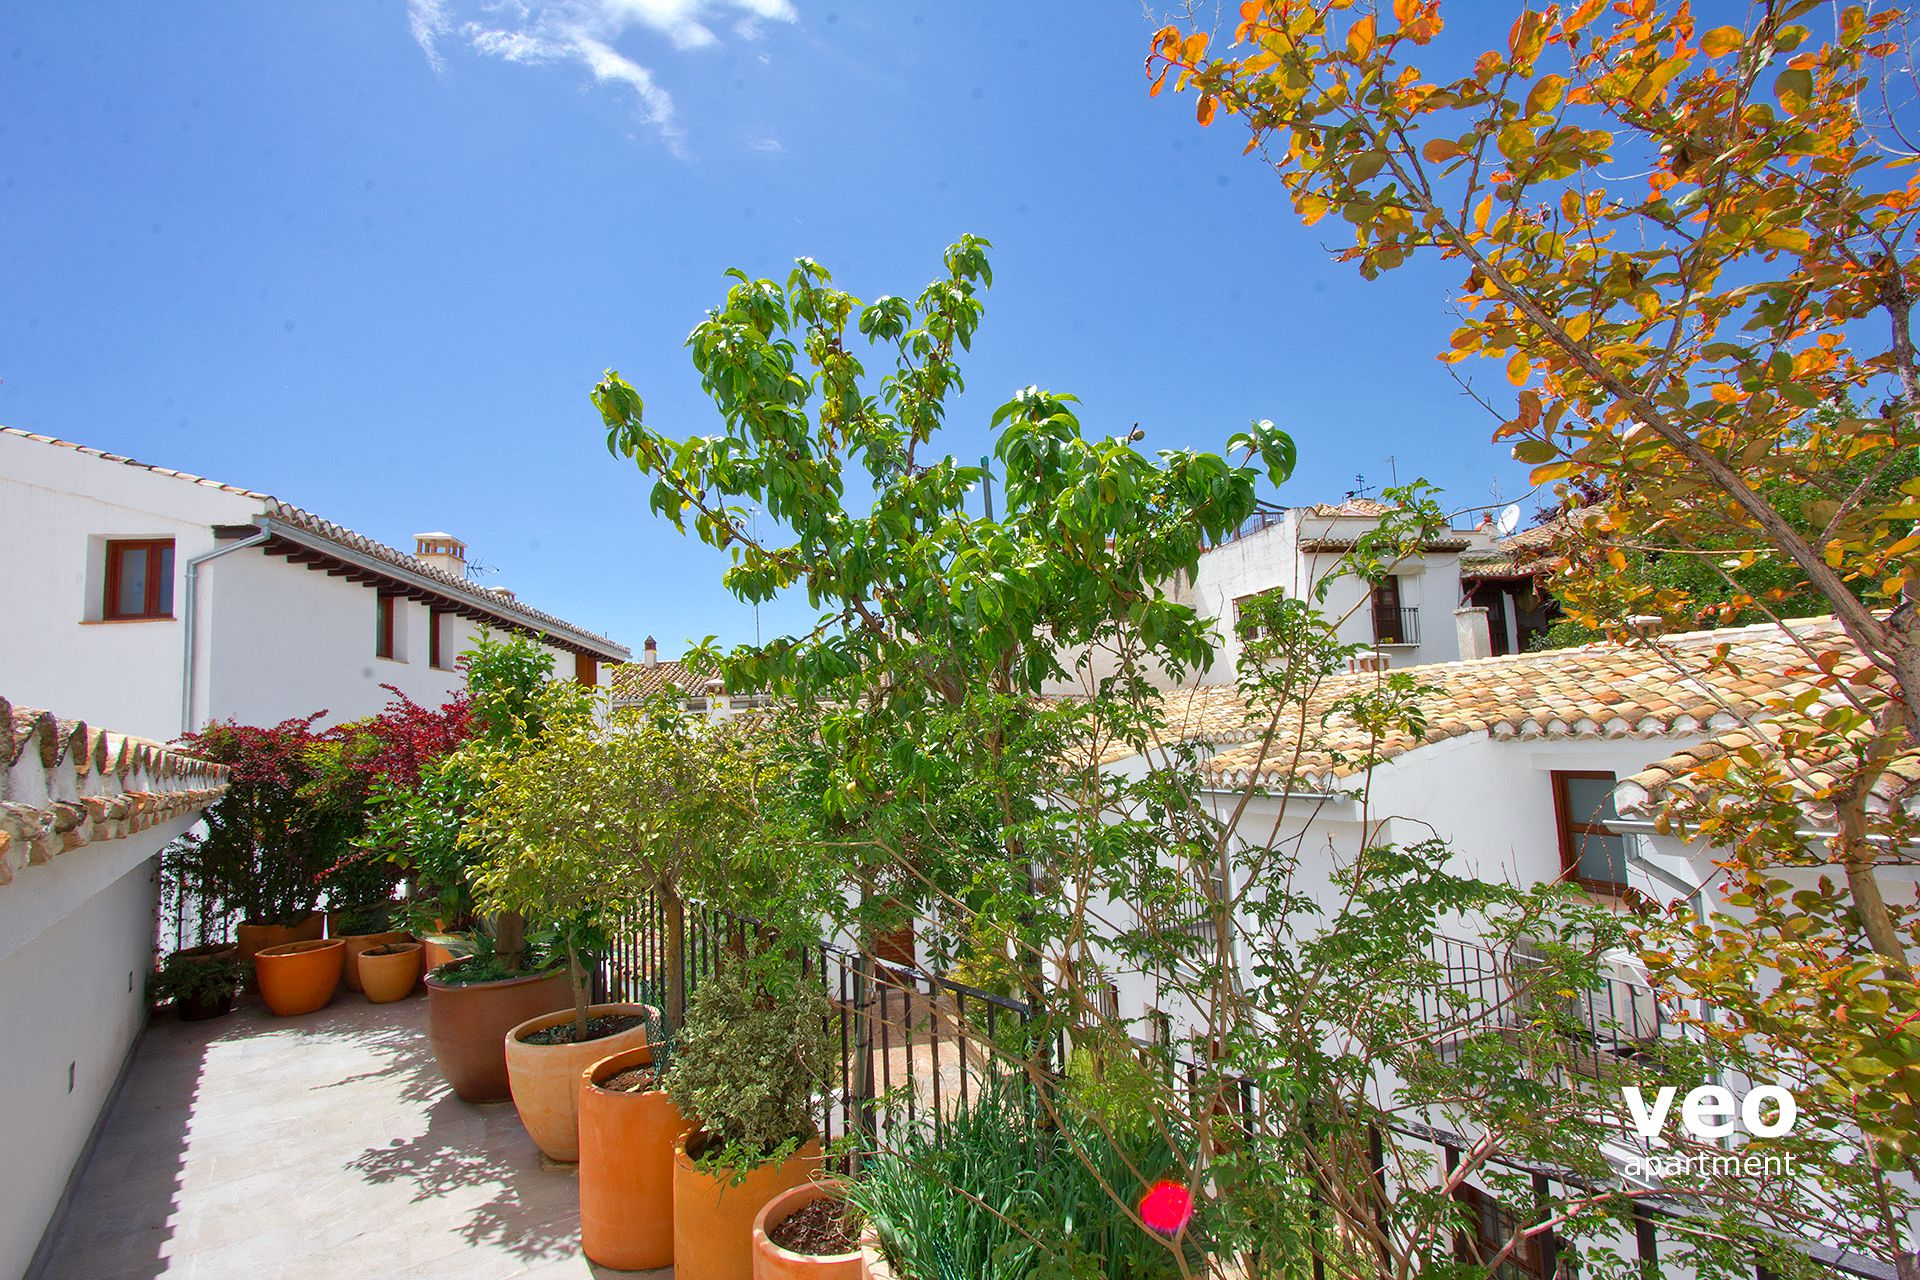 Granada apartment san jos alta street granada spain san for Terrace plants